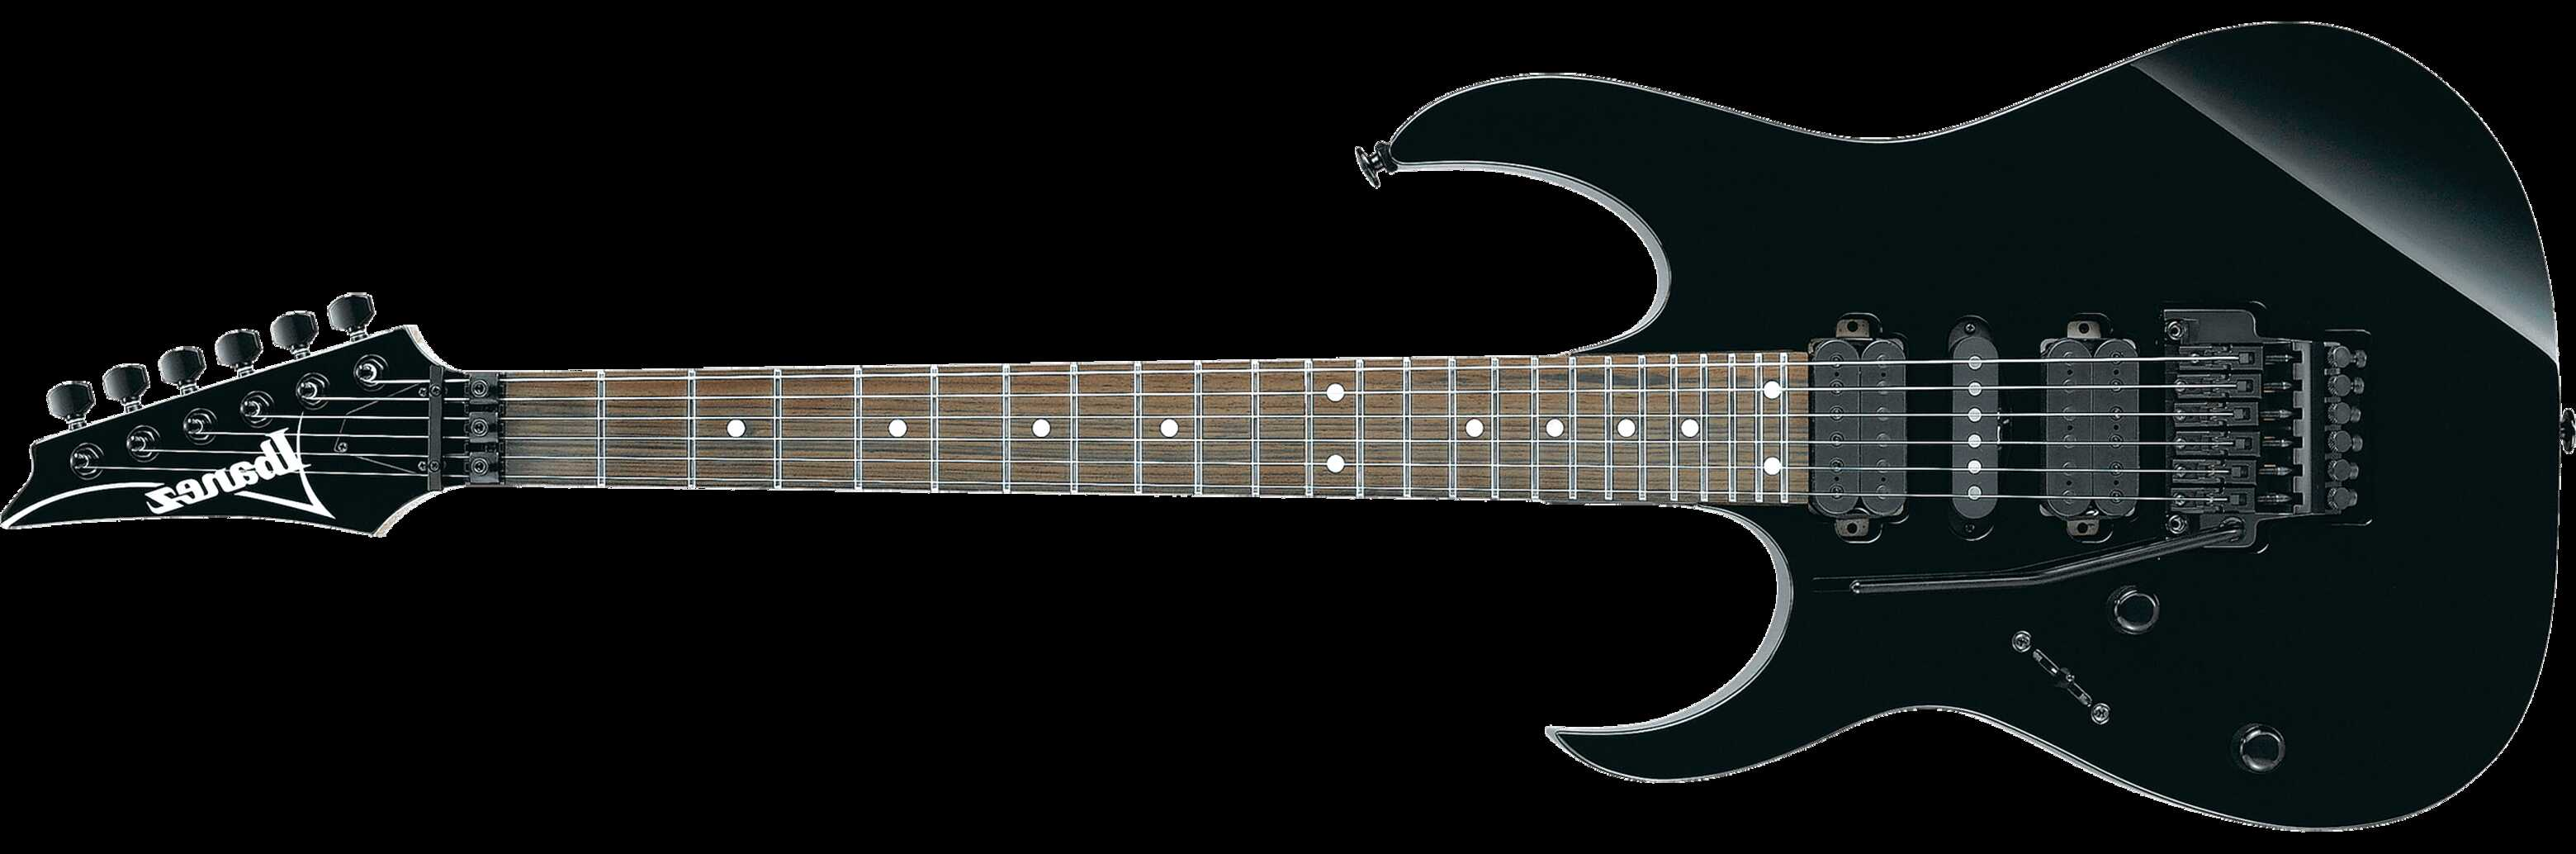 ibanez rg570 for sale